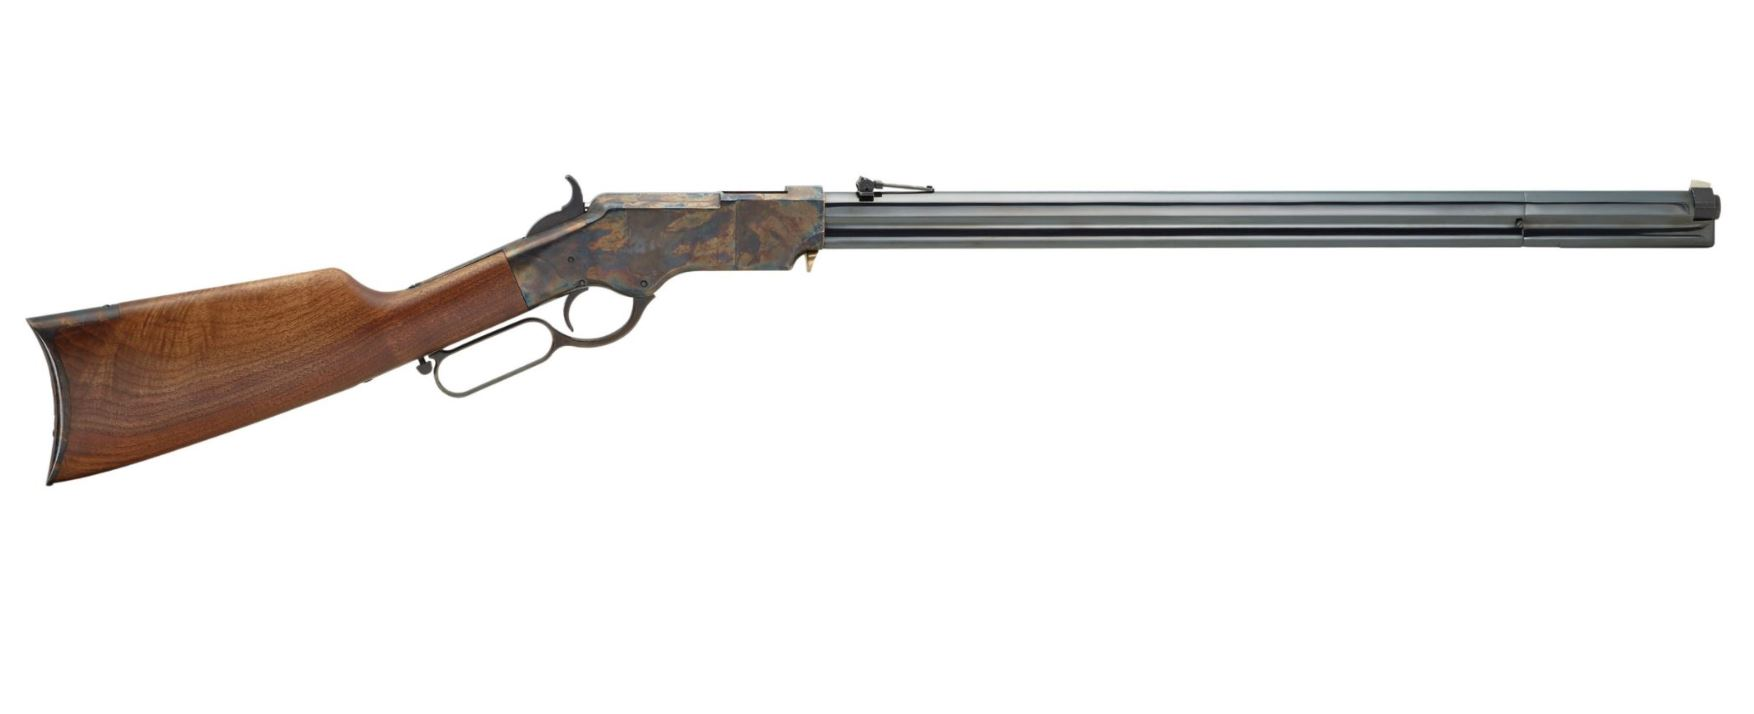 Henry Repeating Arms The New Original Henry Iron 44-40